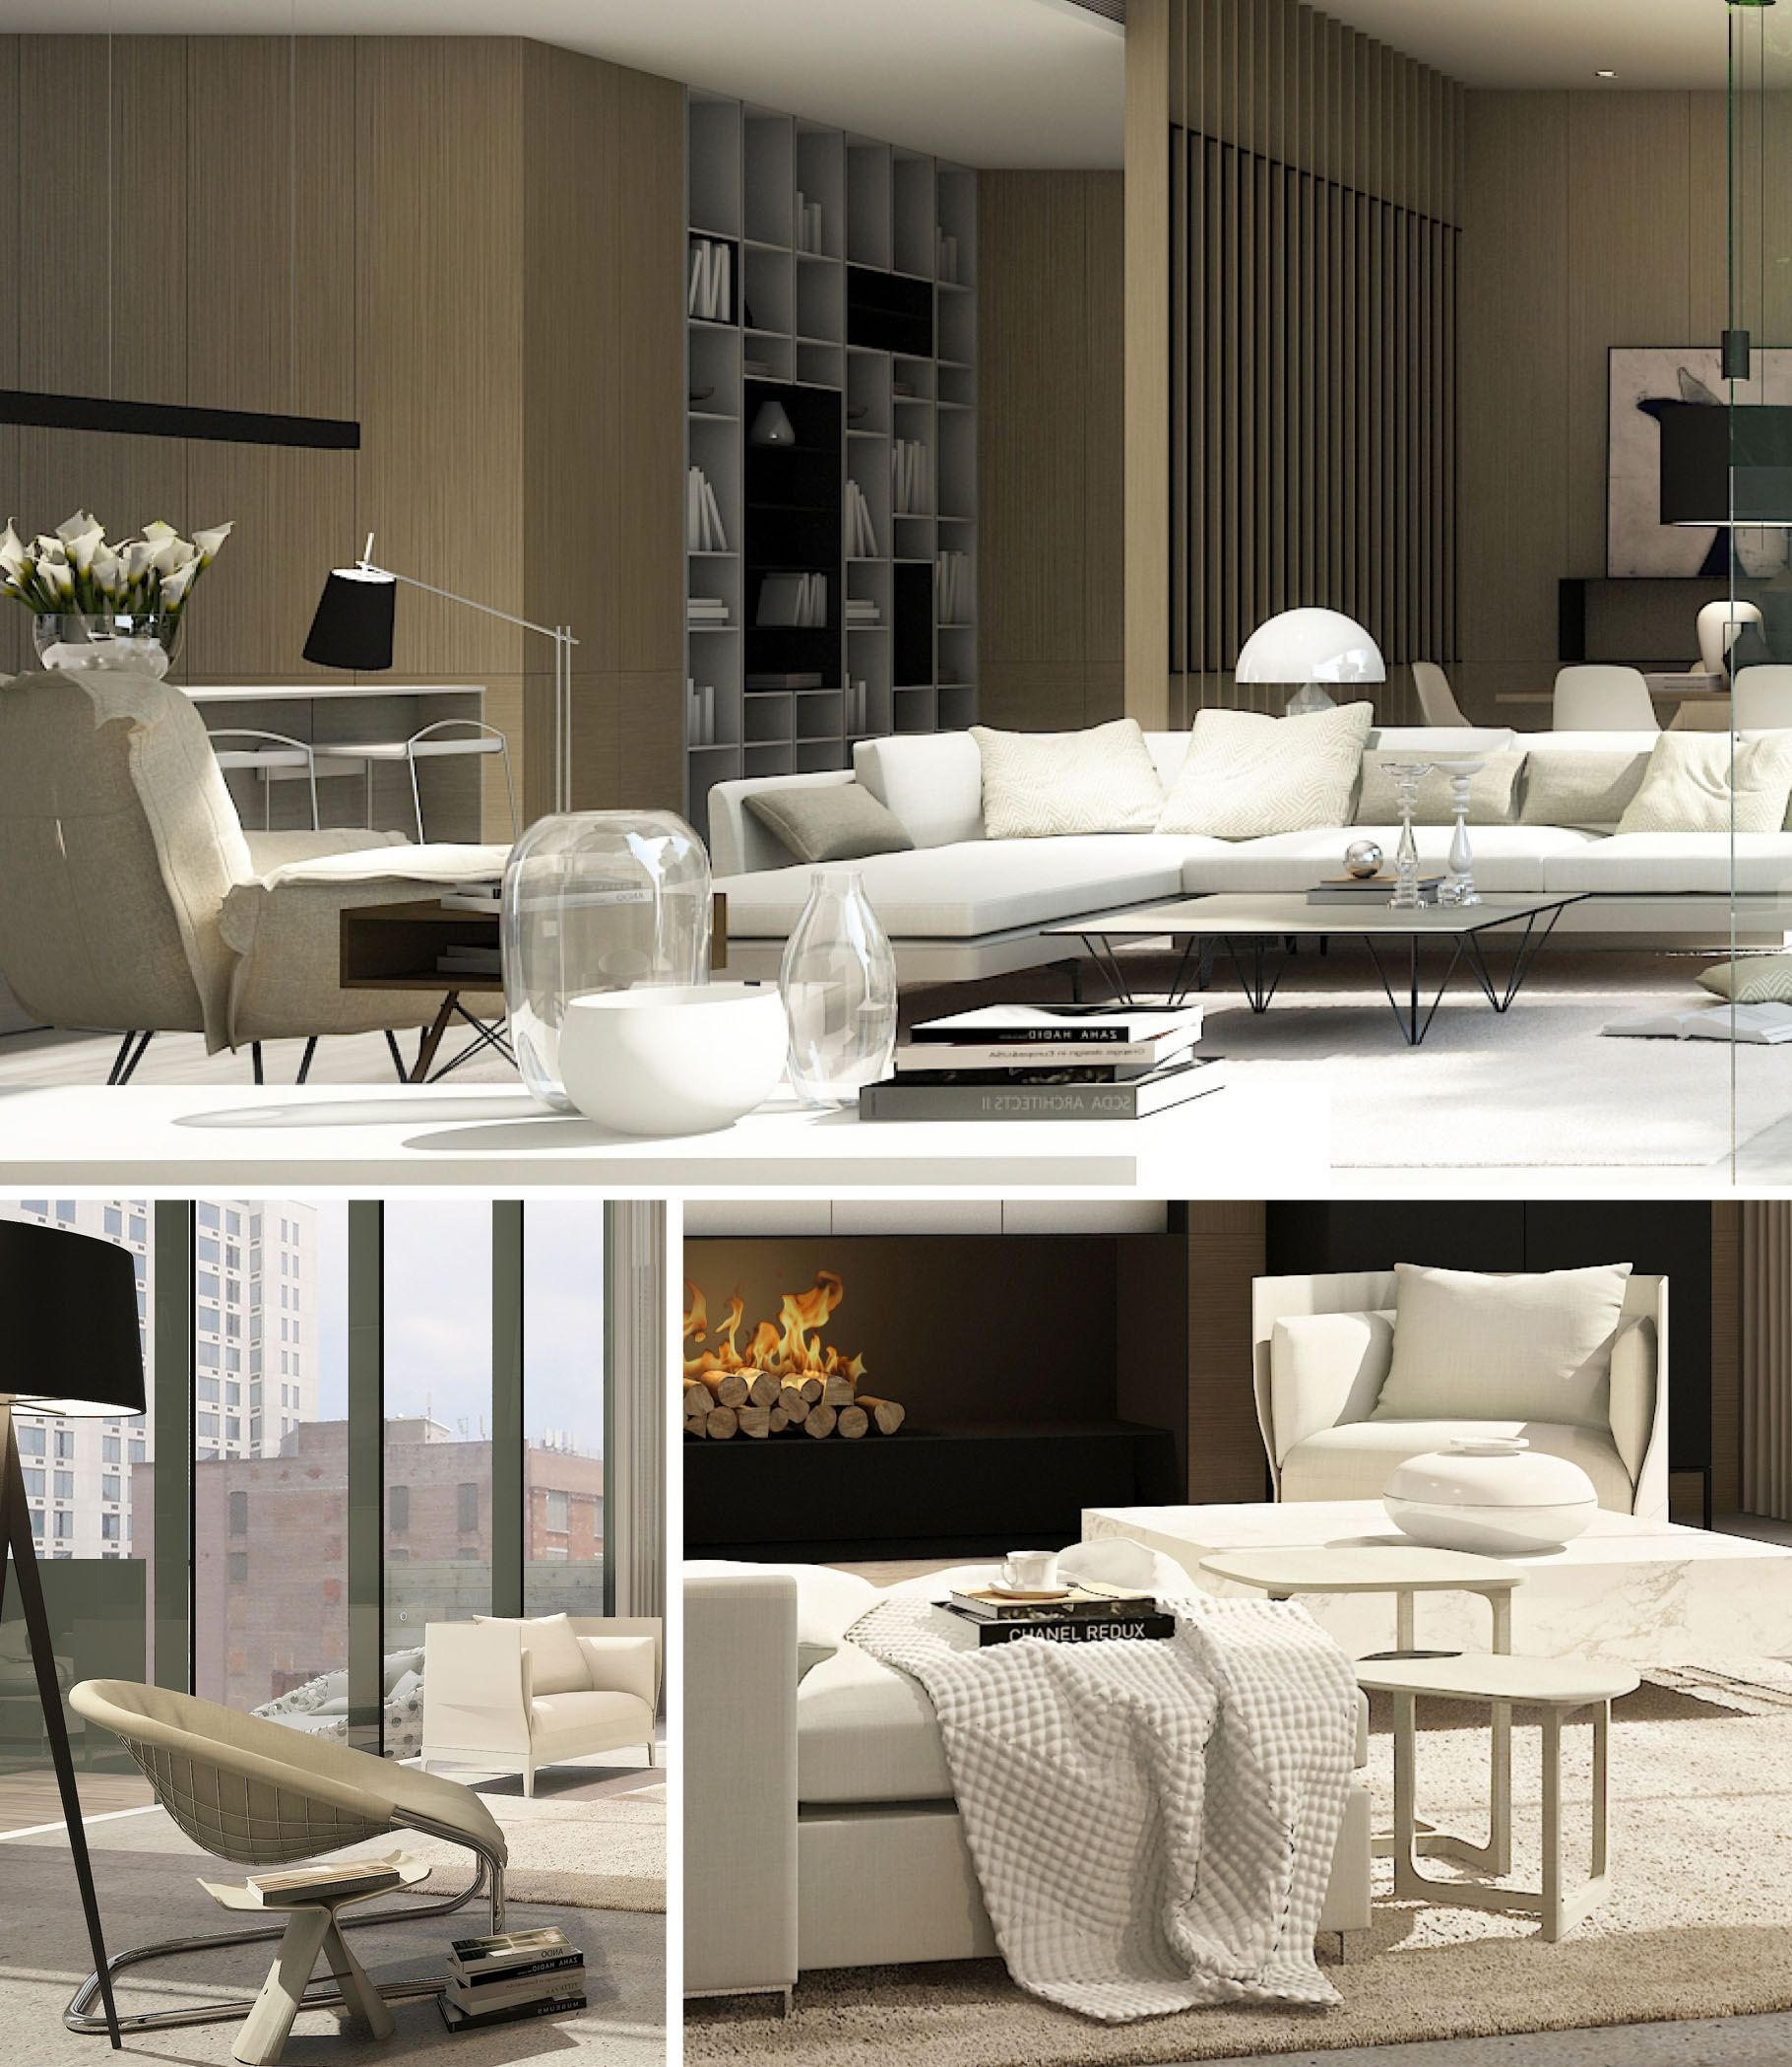 New Home Designs Latest Luxury Living Rooms Interior: SCDA Soori High Line, New York